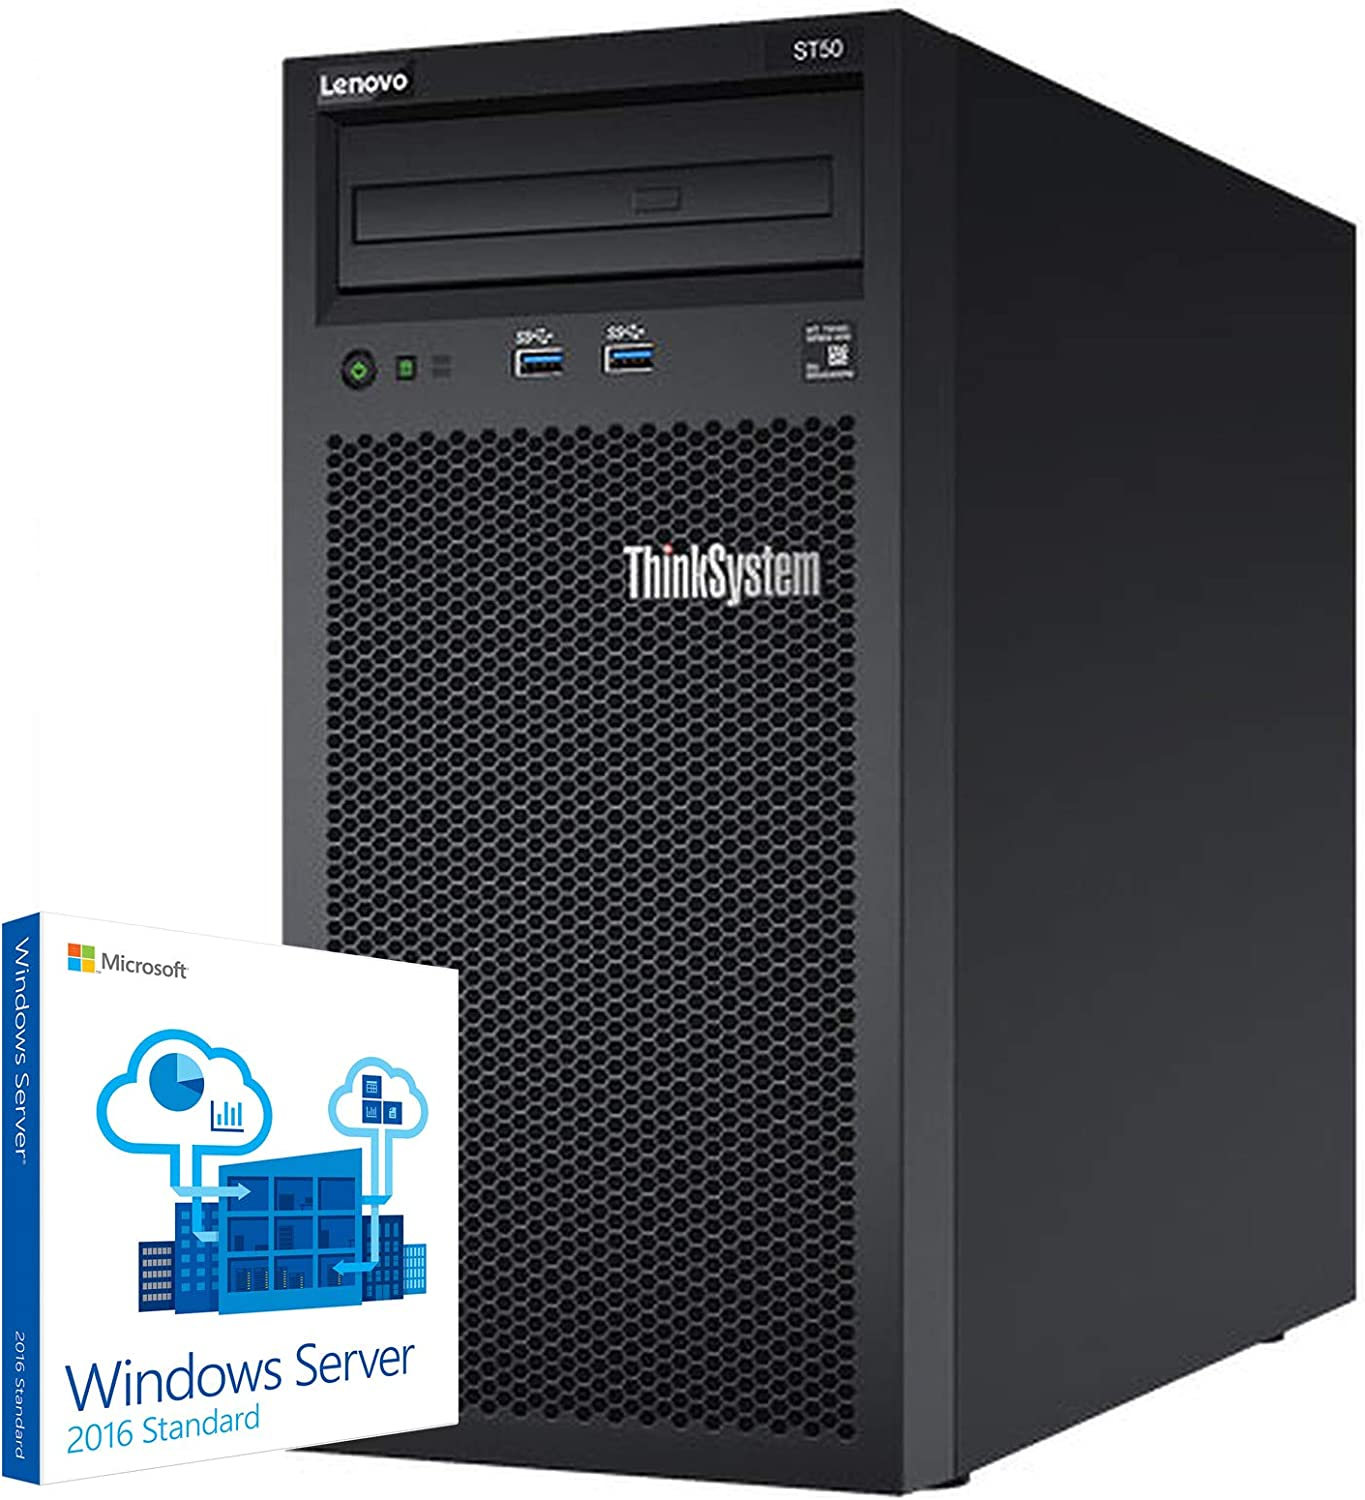 Lenovo ThinkSystem ST50 Tower Server Bundle Including Windows Server 2016, Intel Xeon 3.4GHz CPU, 32GB DDR4 2666MHz RAM, 6TB HDD Storage, JBOD RAID